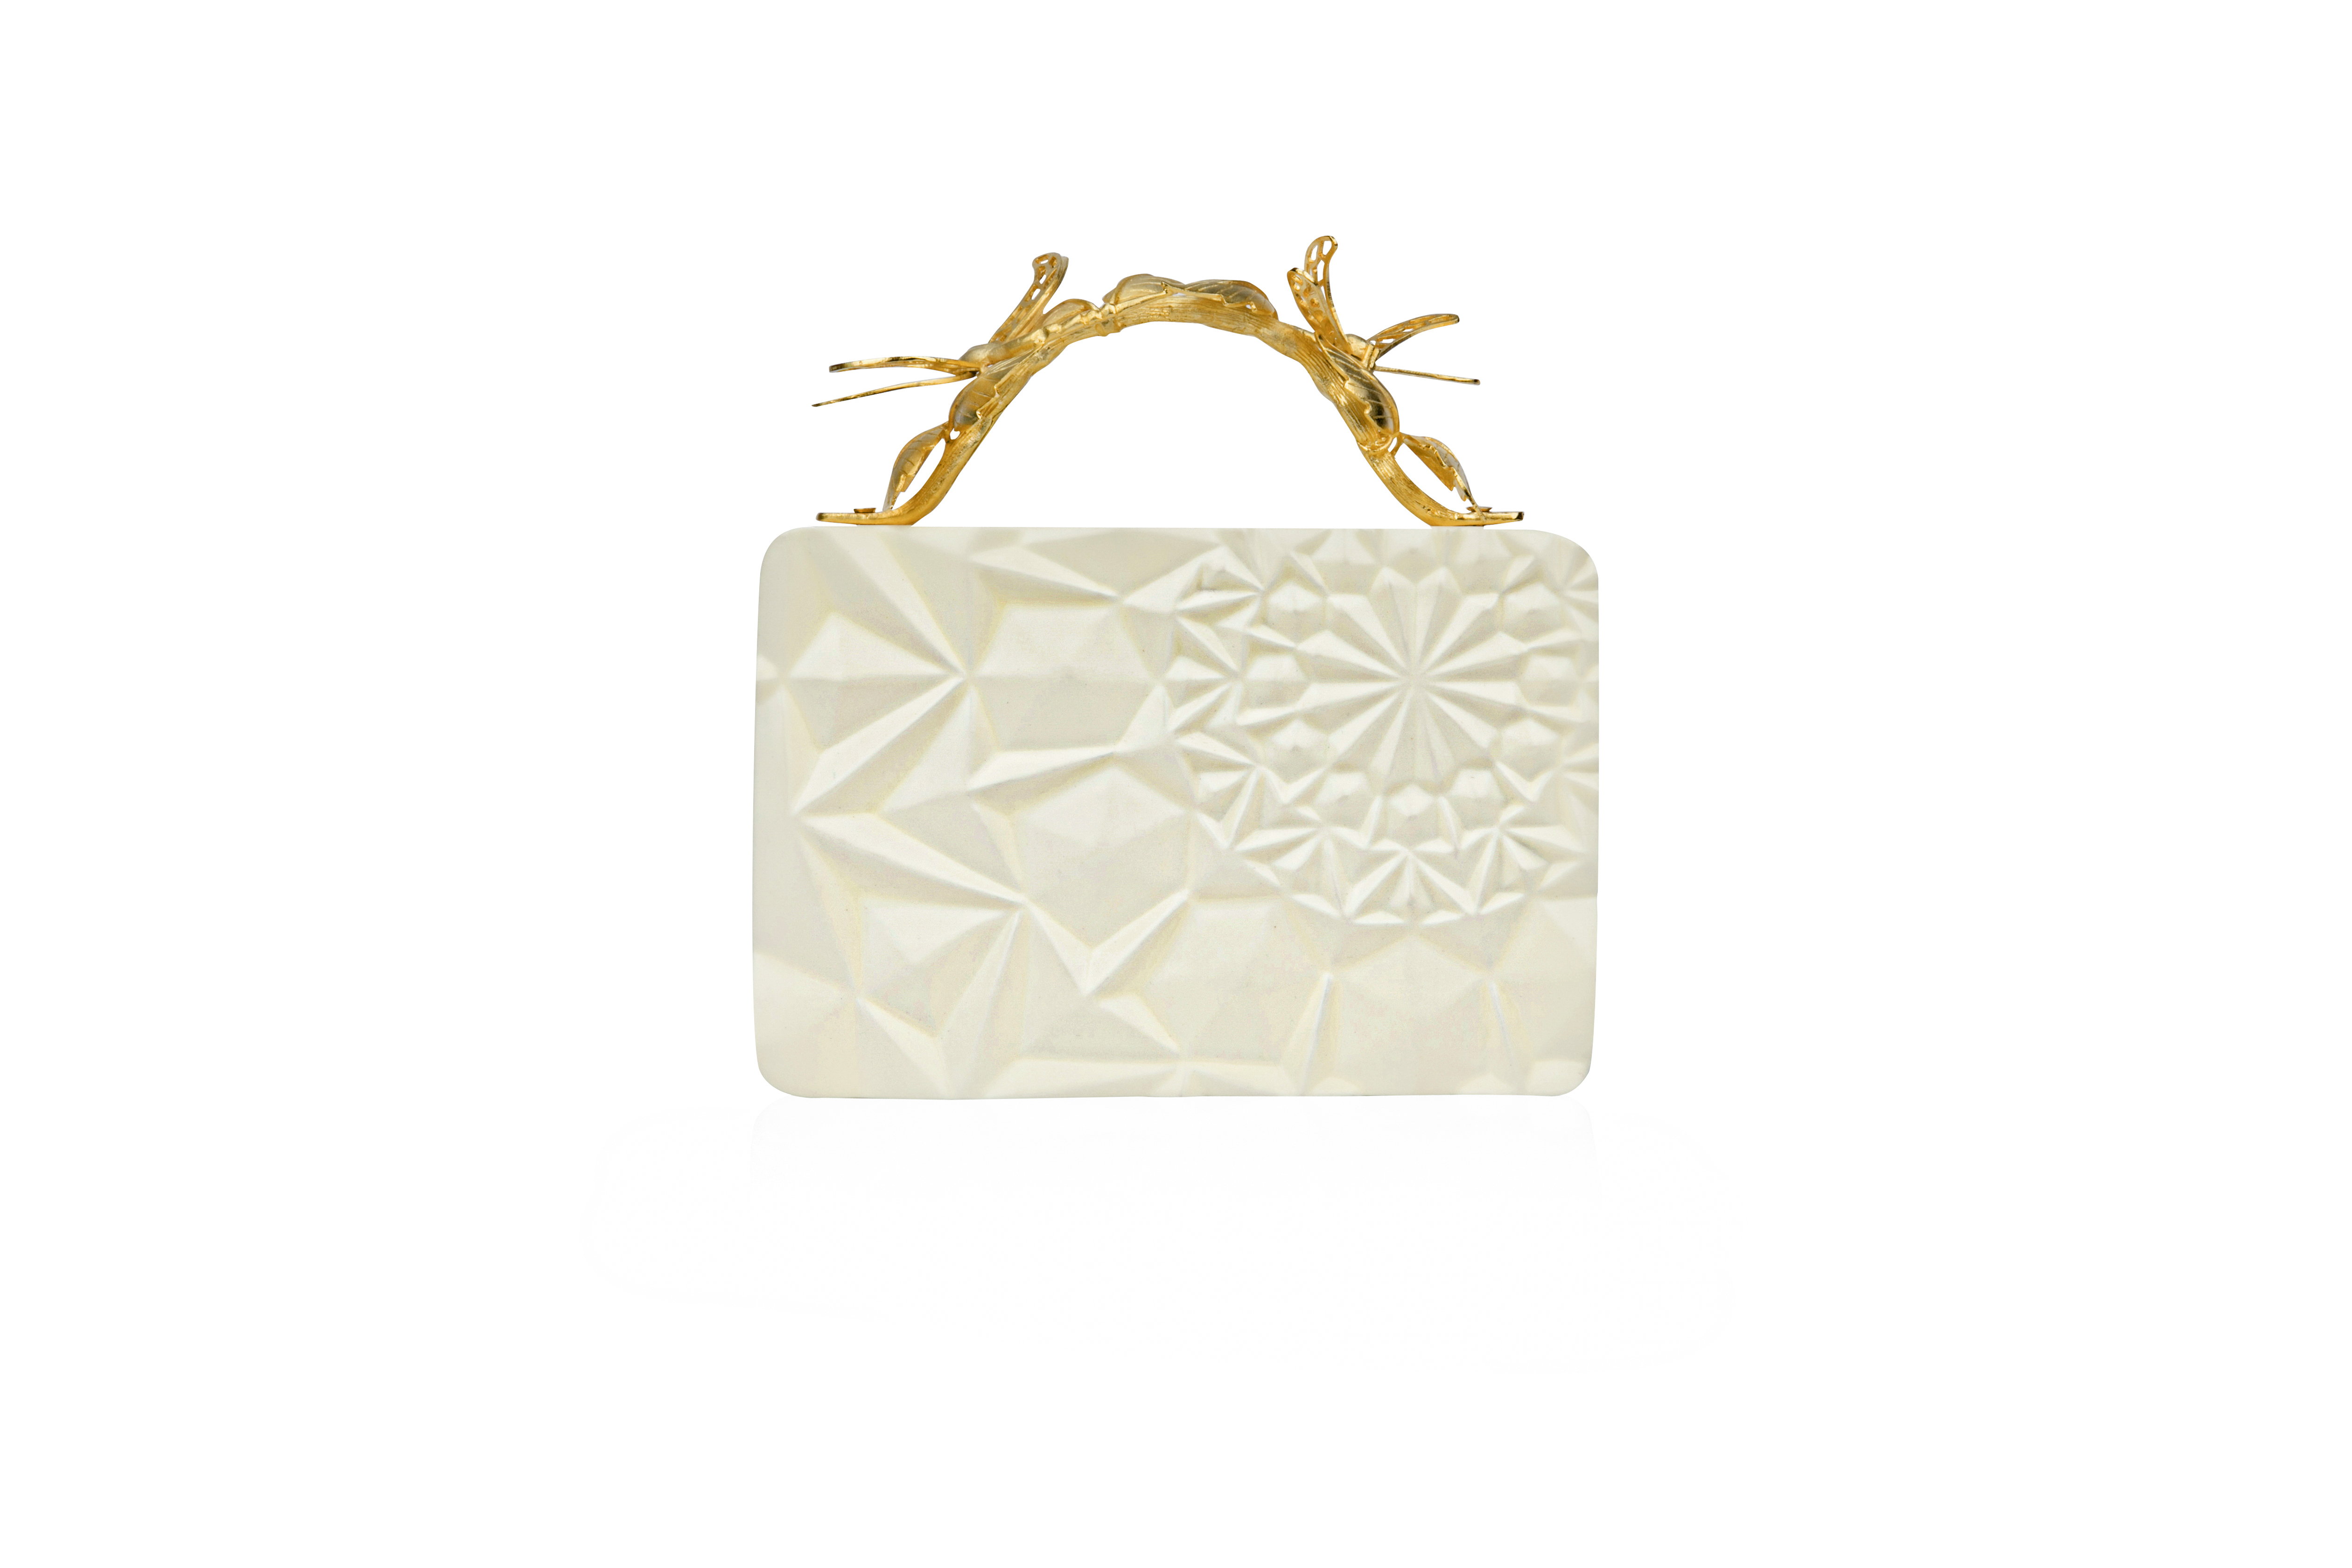 Floral Cream Grasshopper Clutch by Duet Luxury on curated-crowd.com